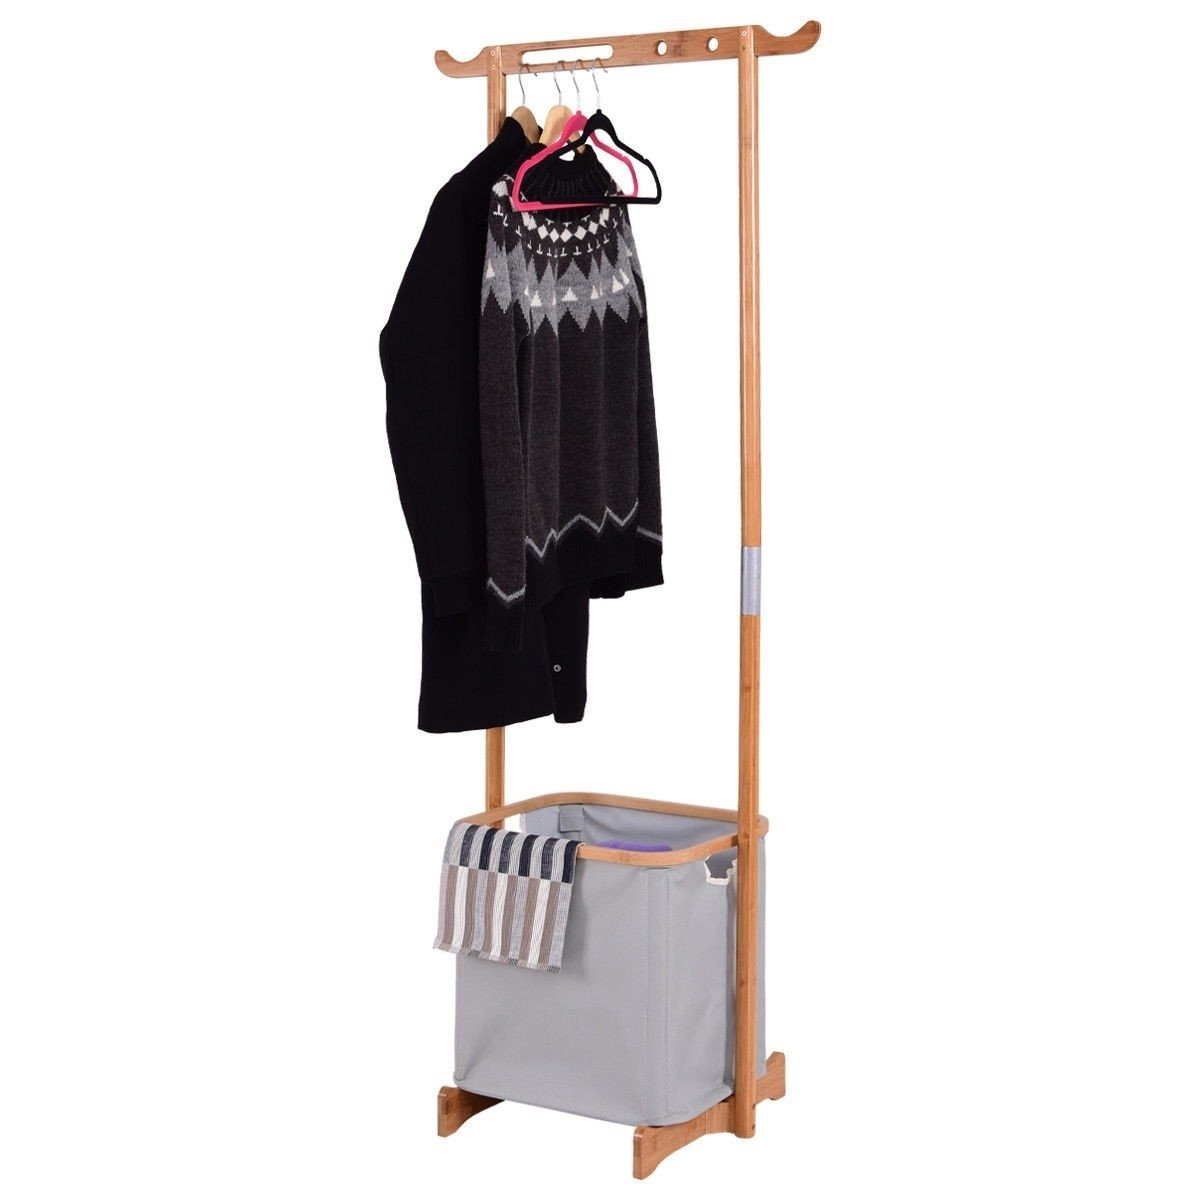 Bamboo Frame Laundry Hamper Basket with Garment Rack Clothes Hanger